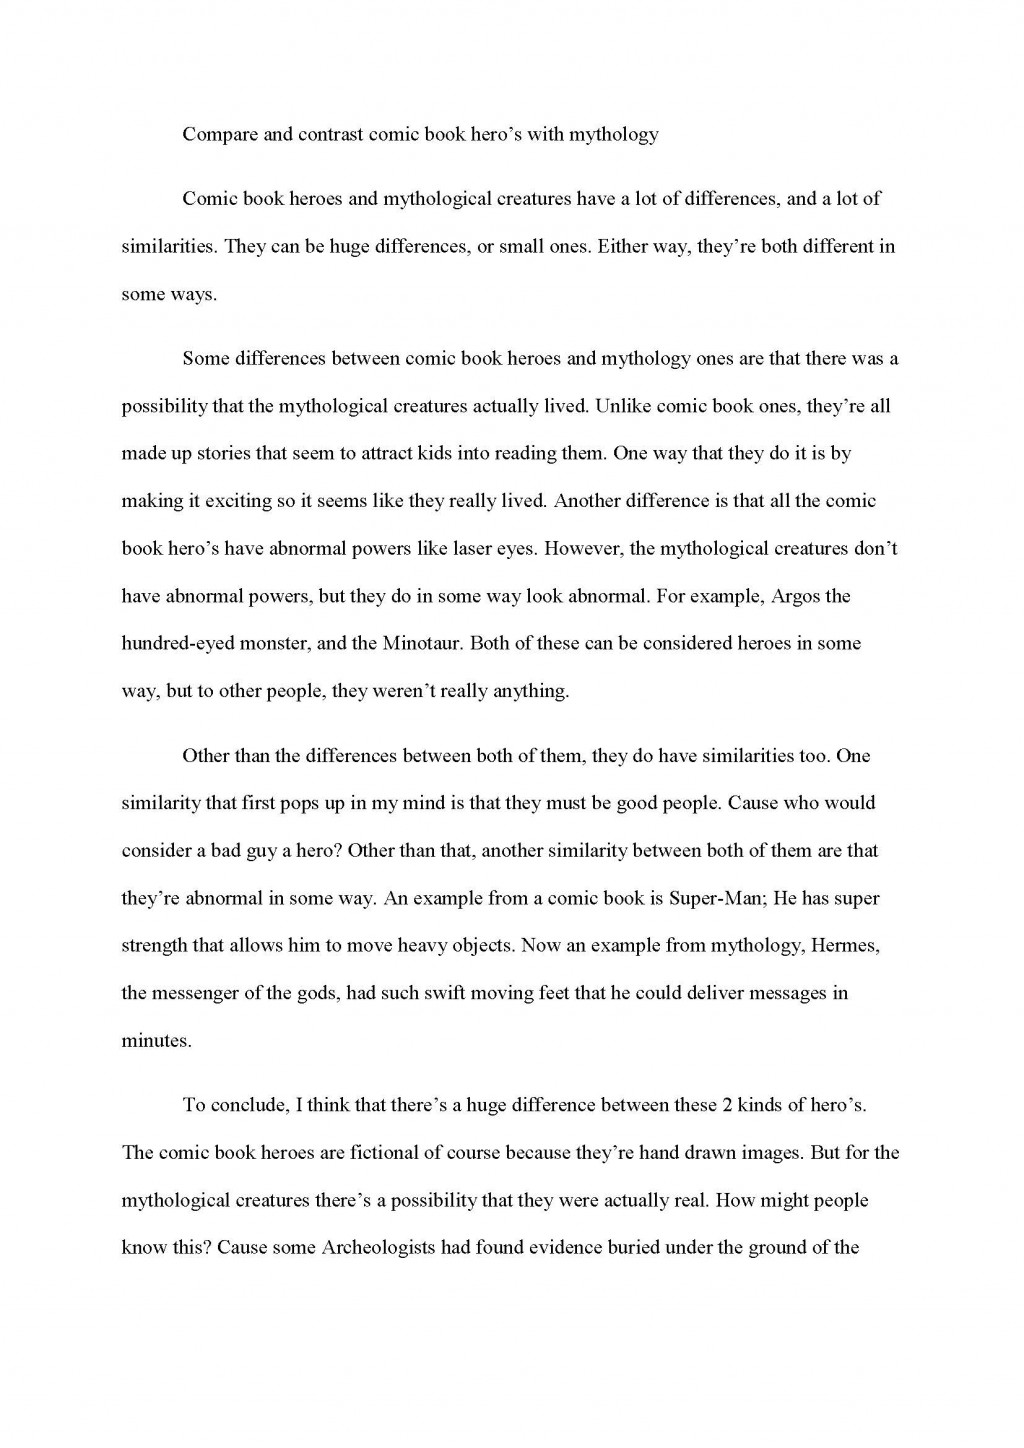 006 Compare And Contrast Essay Conclusion Example Staggering High School College Large